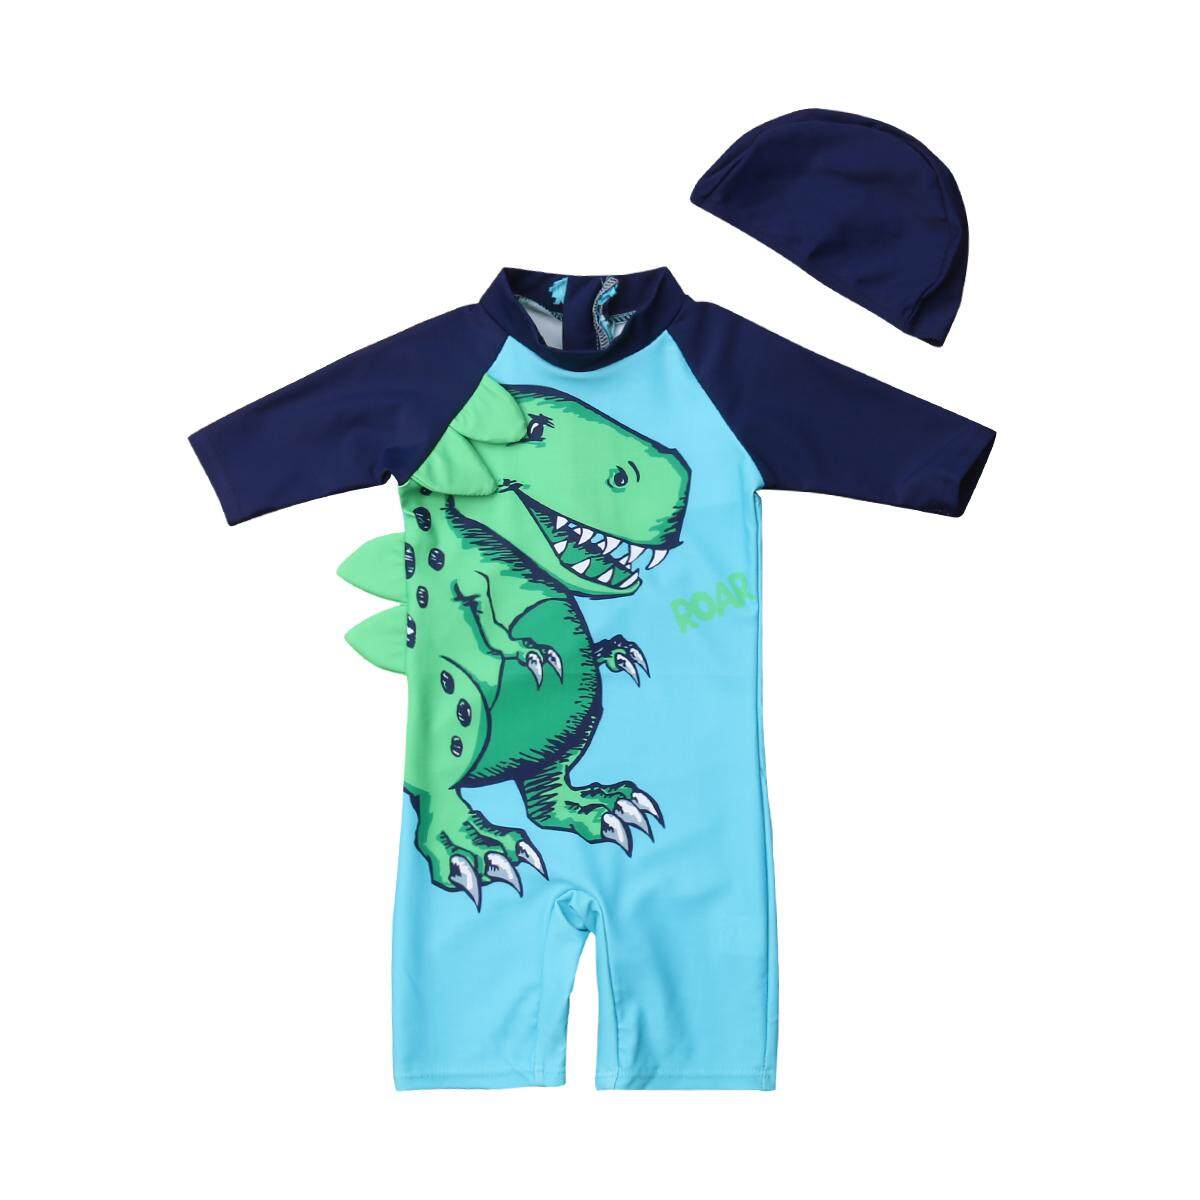 c11e4390f7 2019 Toddler Kids Baby Boy Girls Cartoon Rash Guard Sun Protective Rompers  Hat Outfits Surf Beach